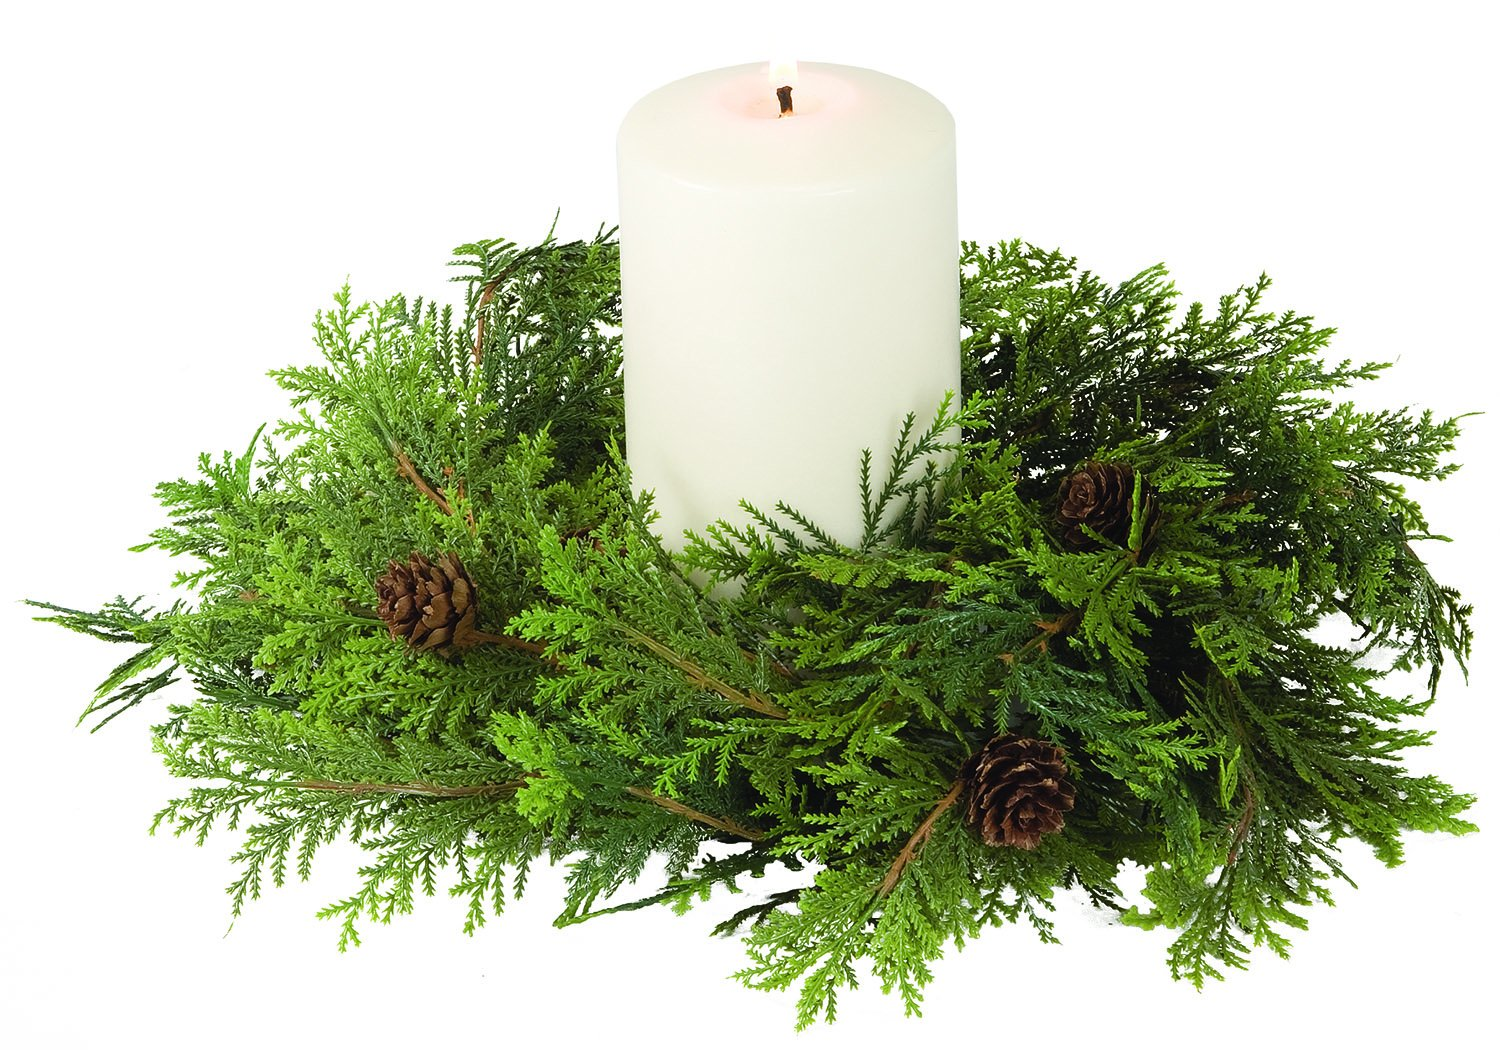 12 Inch Artificial Cypress Pine Christmas Candle Ring With Pine Cones For A 4.5 Inch Pillar Candle SUL CP448